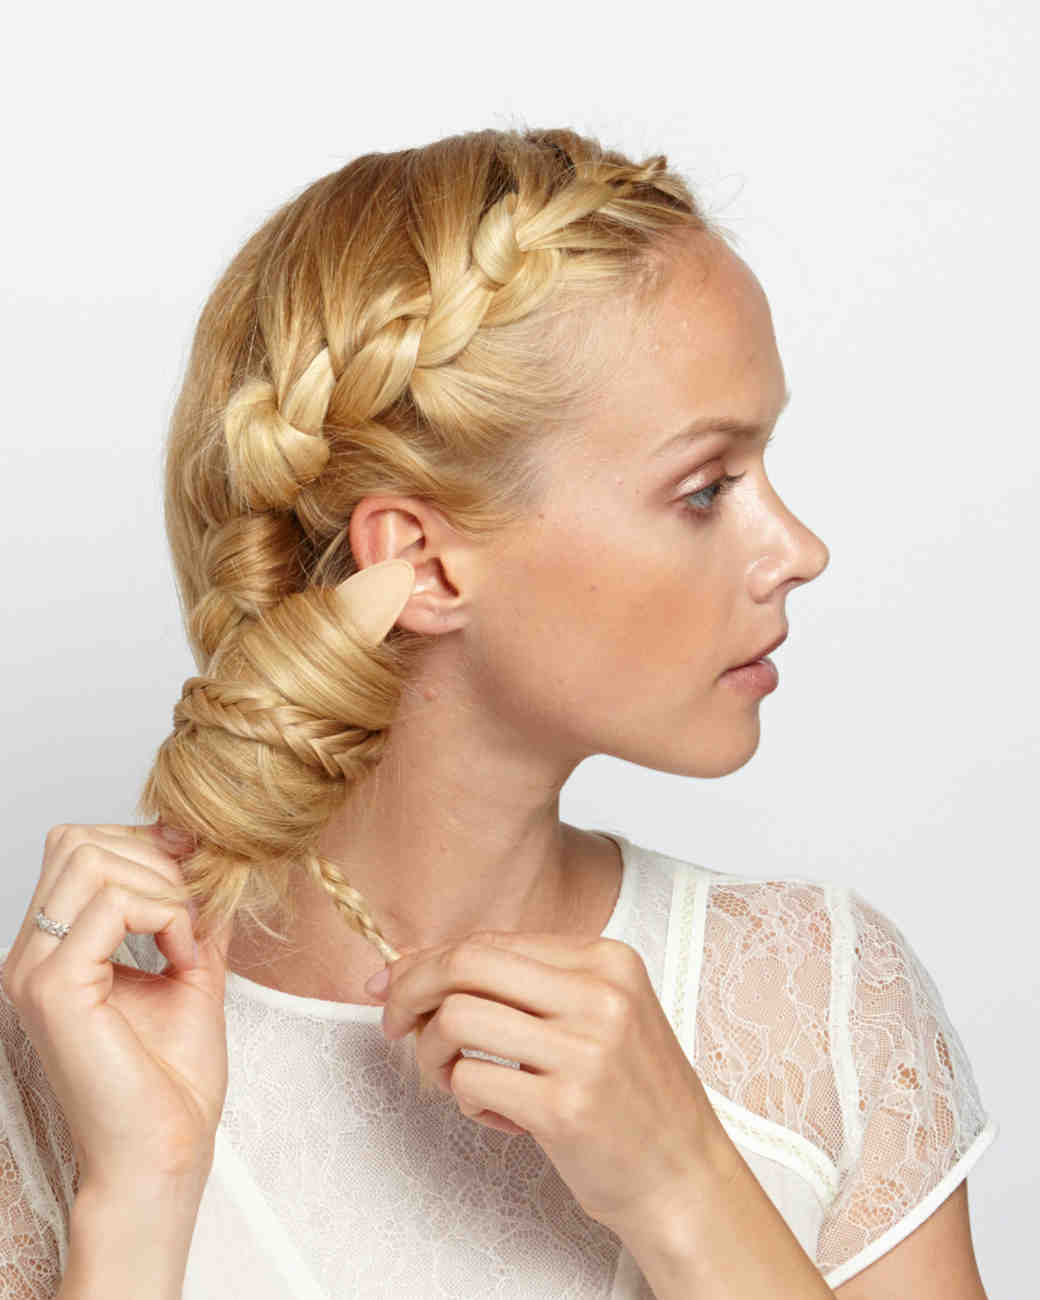 hidden-braid-step-3-5036-d111417-1014.jpg